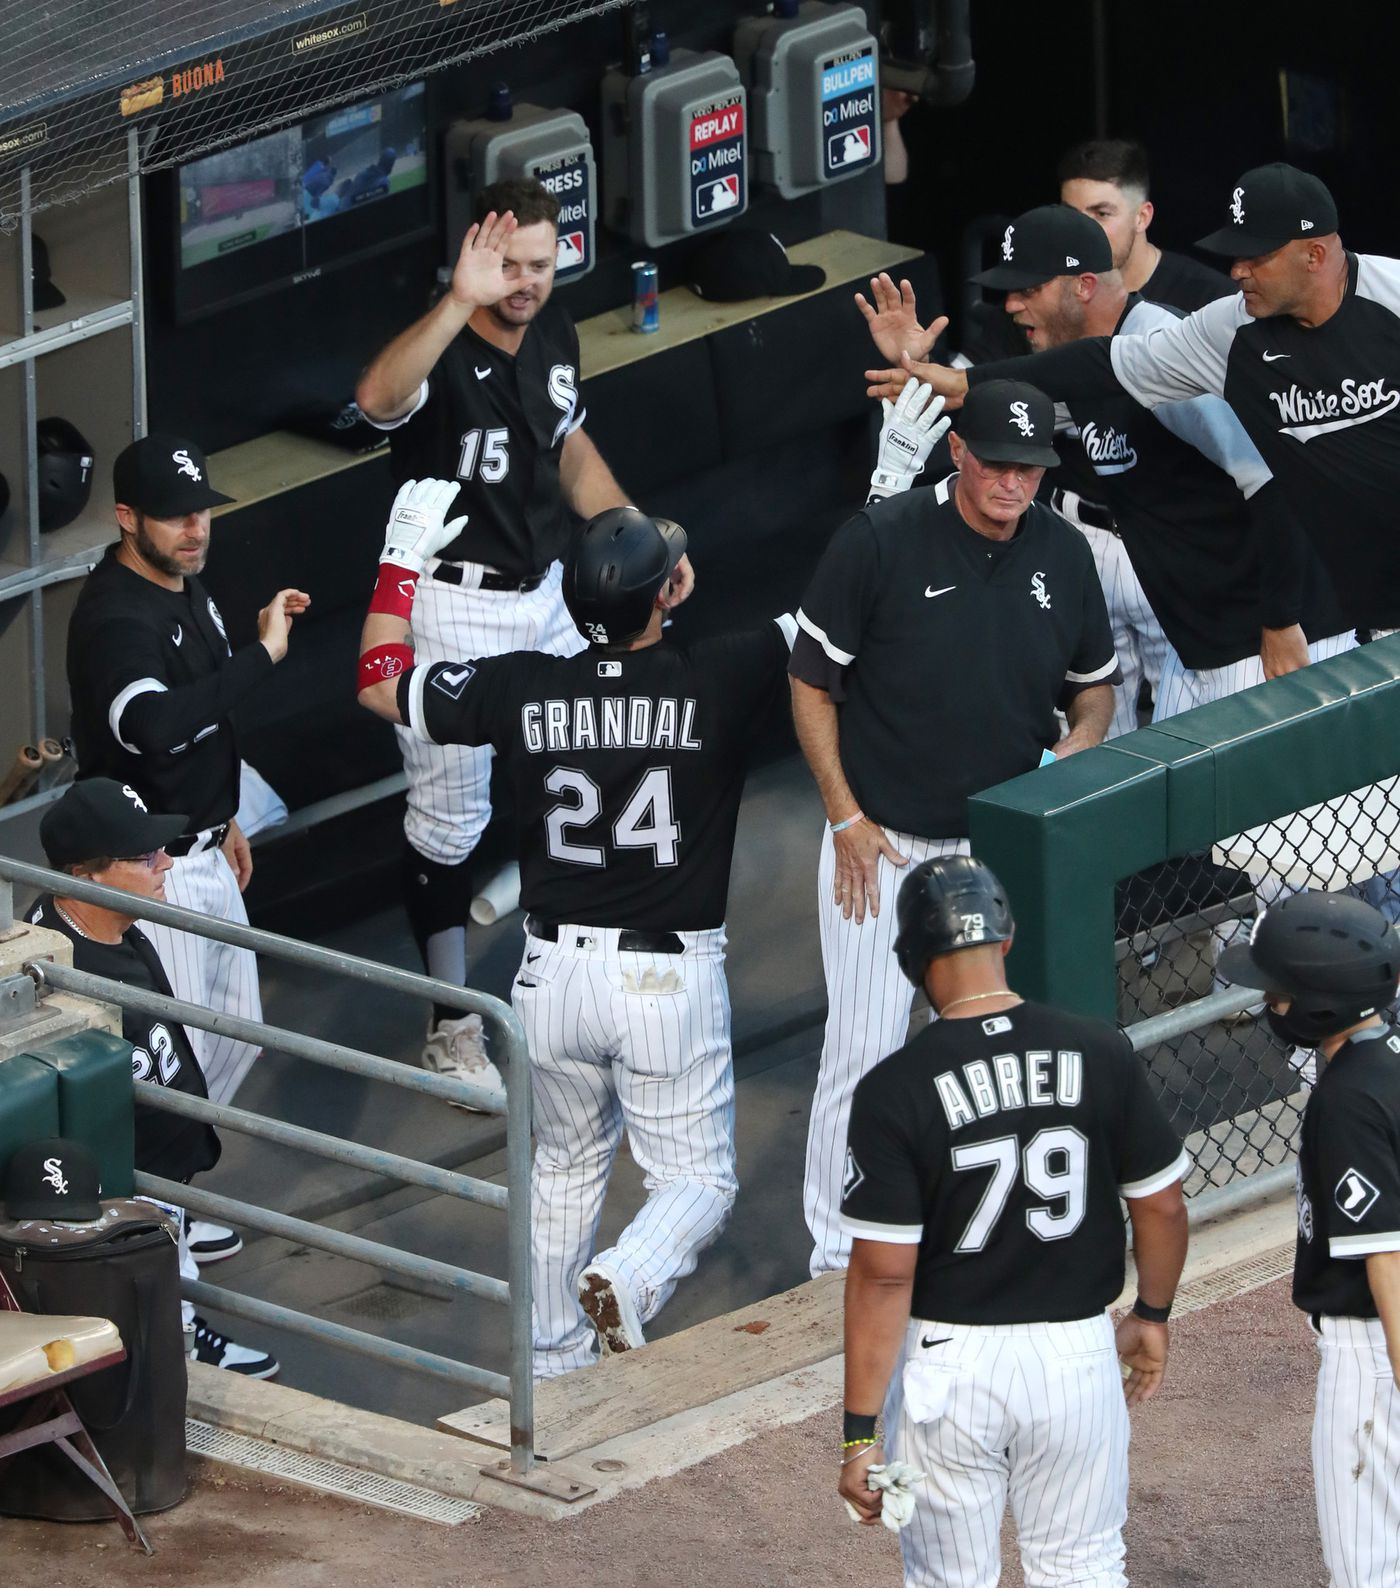 White Sox catcher Yasmani Grandal is congratulated on his two-run home run in the first inning against the Blue Jays on June 10, 2021, at Guaranteed Rate Field.